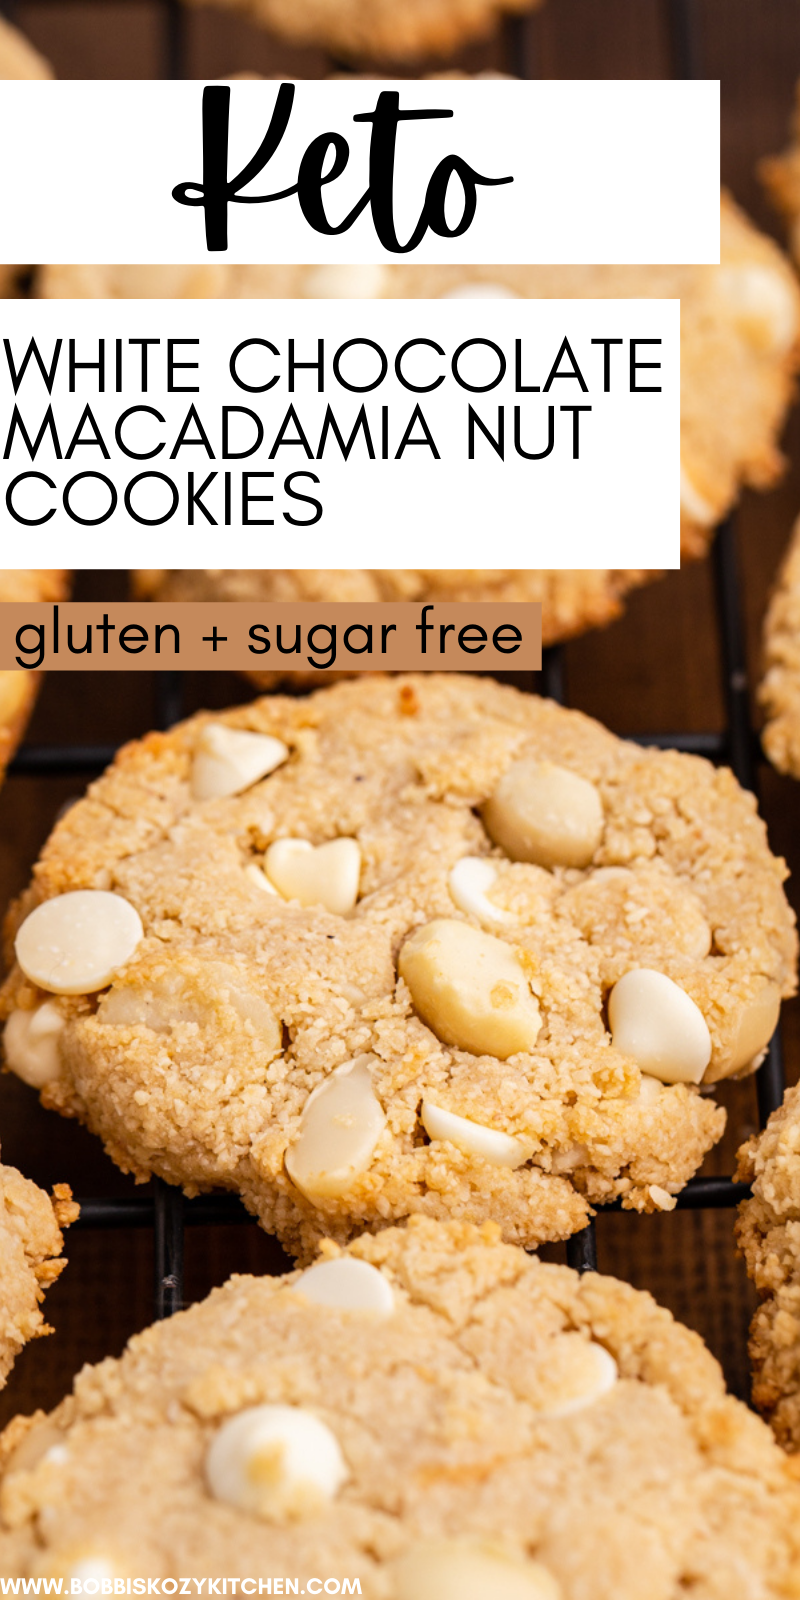 Keto White Chocolate Macadamia Nut Cookies - These Keto White Chocolate Macadamia Nut Cookies are crispy on the edges with the perfect amount of chocolate and nuts and only 2 net carbs per cookie! #keto #lowcarb #glutenfree #sugarfree #white #chocolate #Macadamia #cookies #recipe